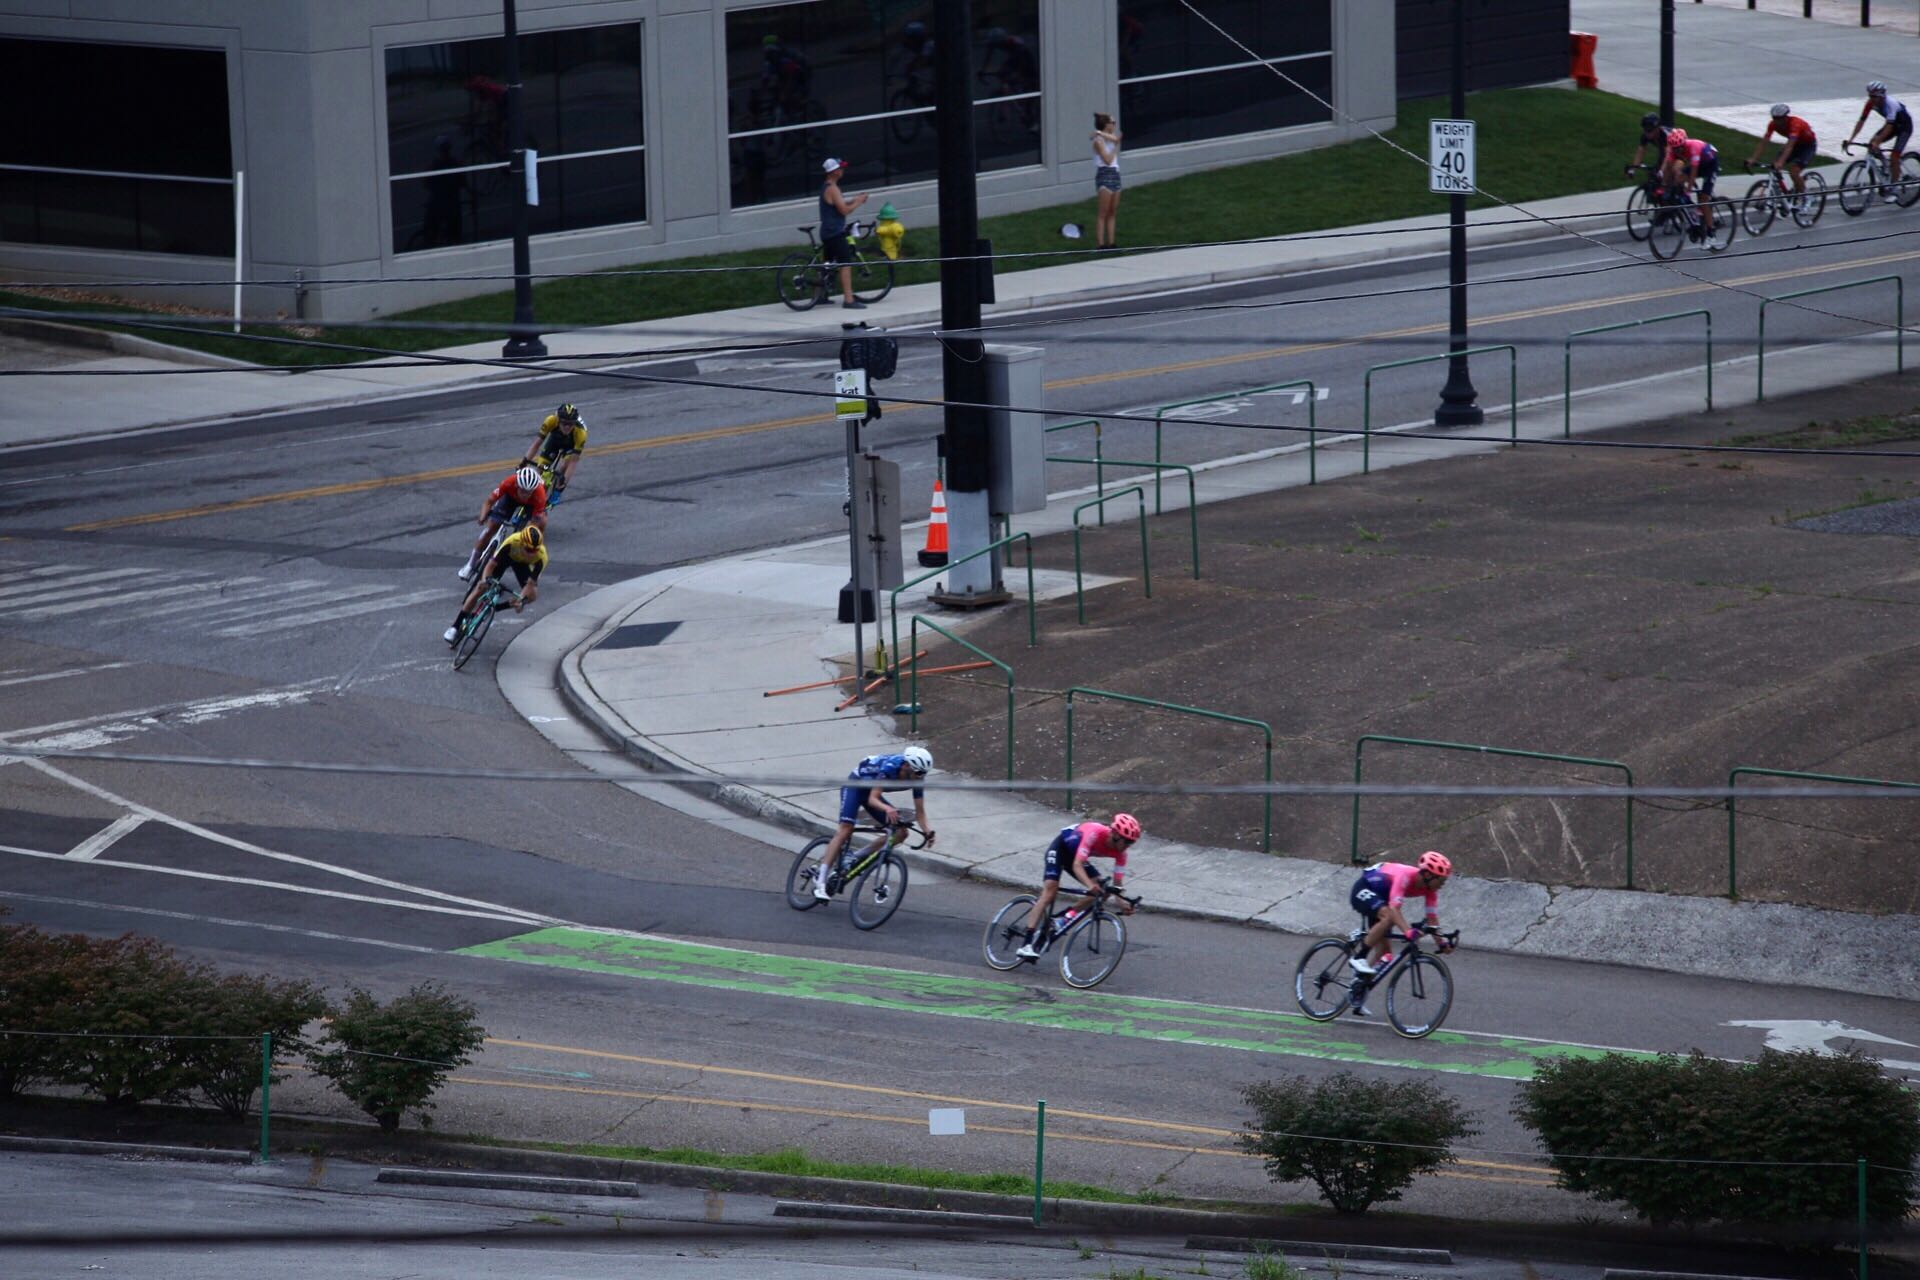 Scenes from the men's 2019 USA Cycling Pro Road National Championship on Sunday, June 30, 2019, in Knoxville, Tenn. (David Killebrew / WATE)